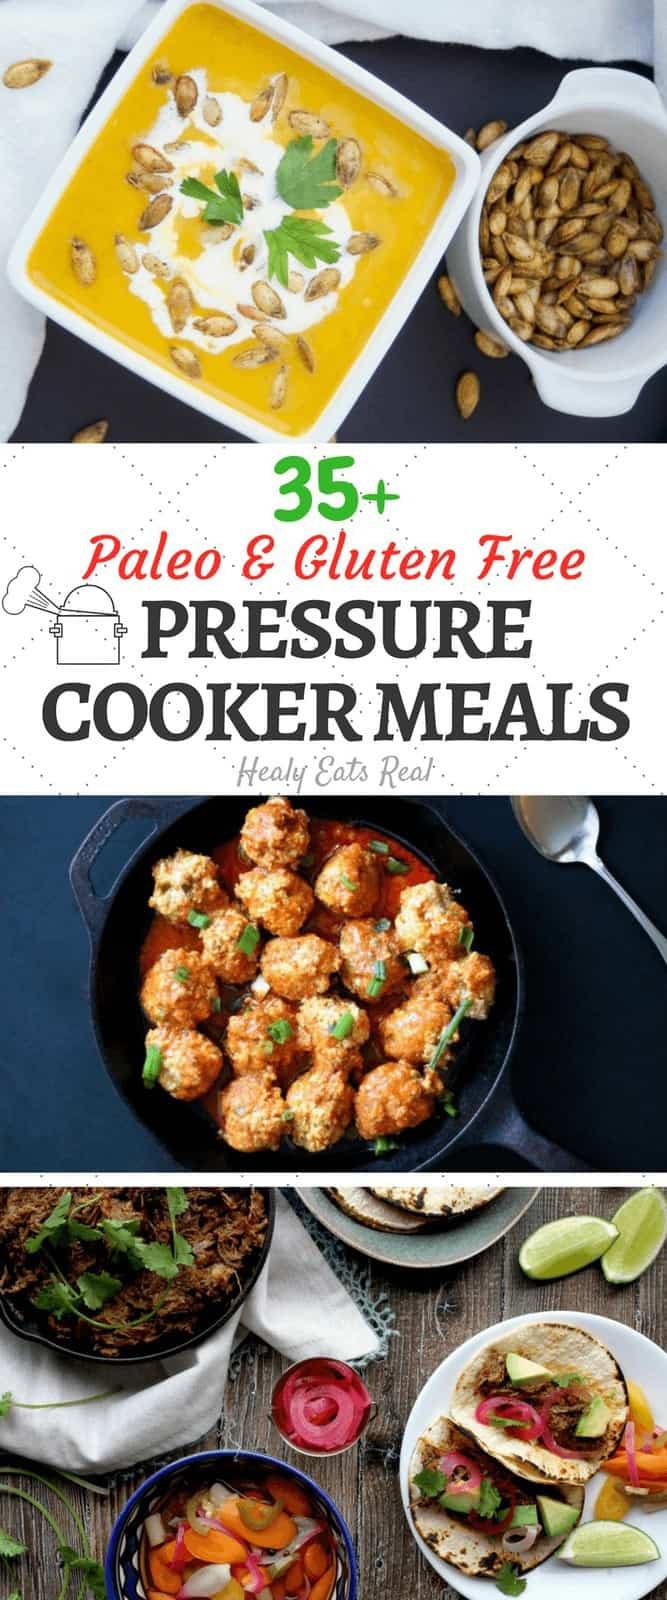 Paleo Instant Pot Pressure Cooker Meal Recipes (Gluten Free & Dairy Free)